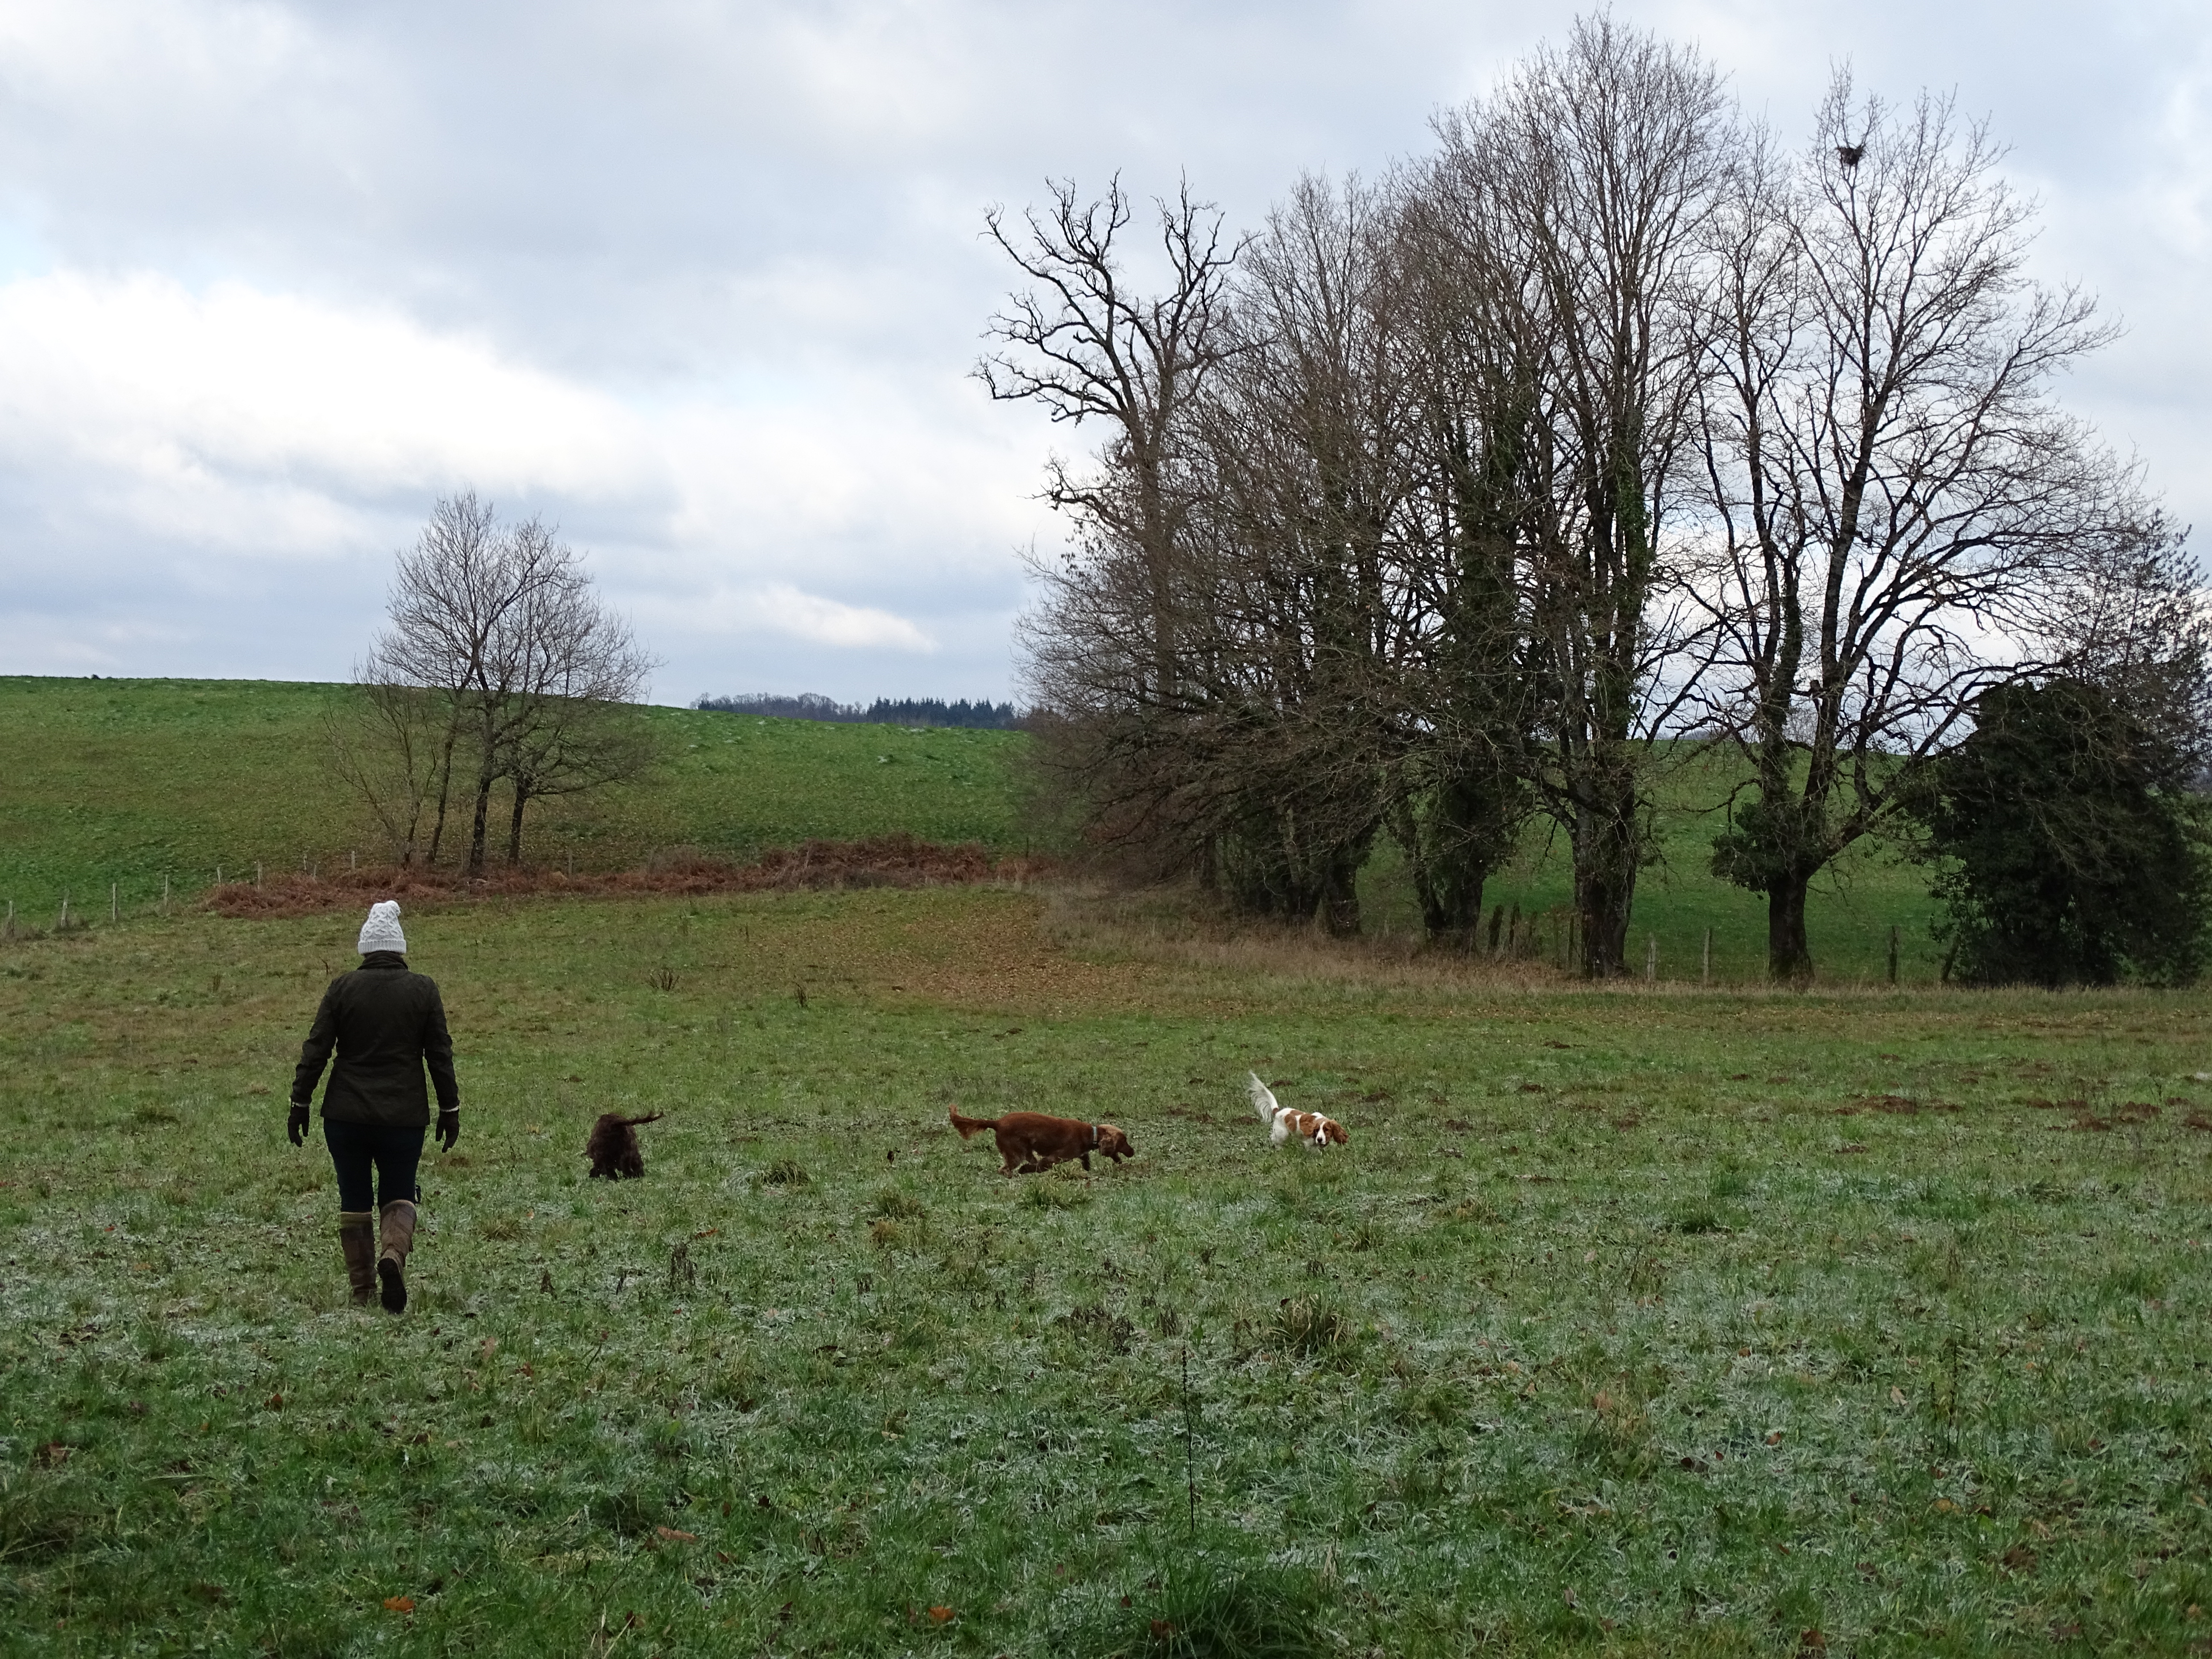 Dogs playing in the field